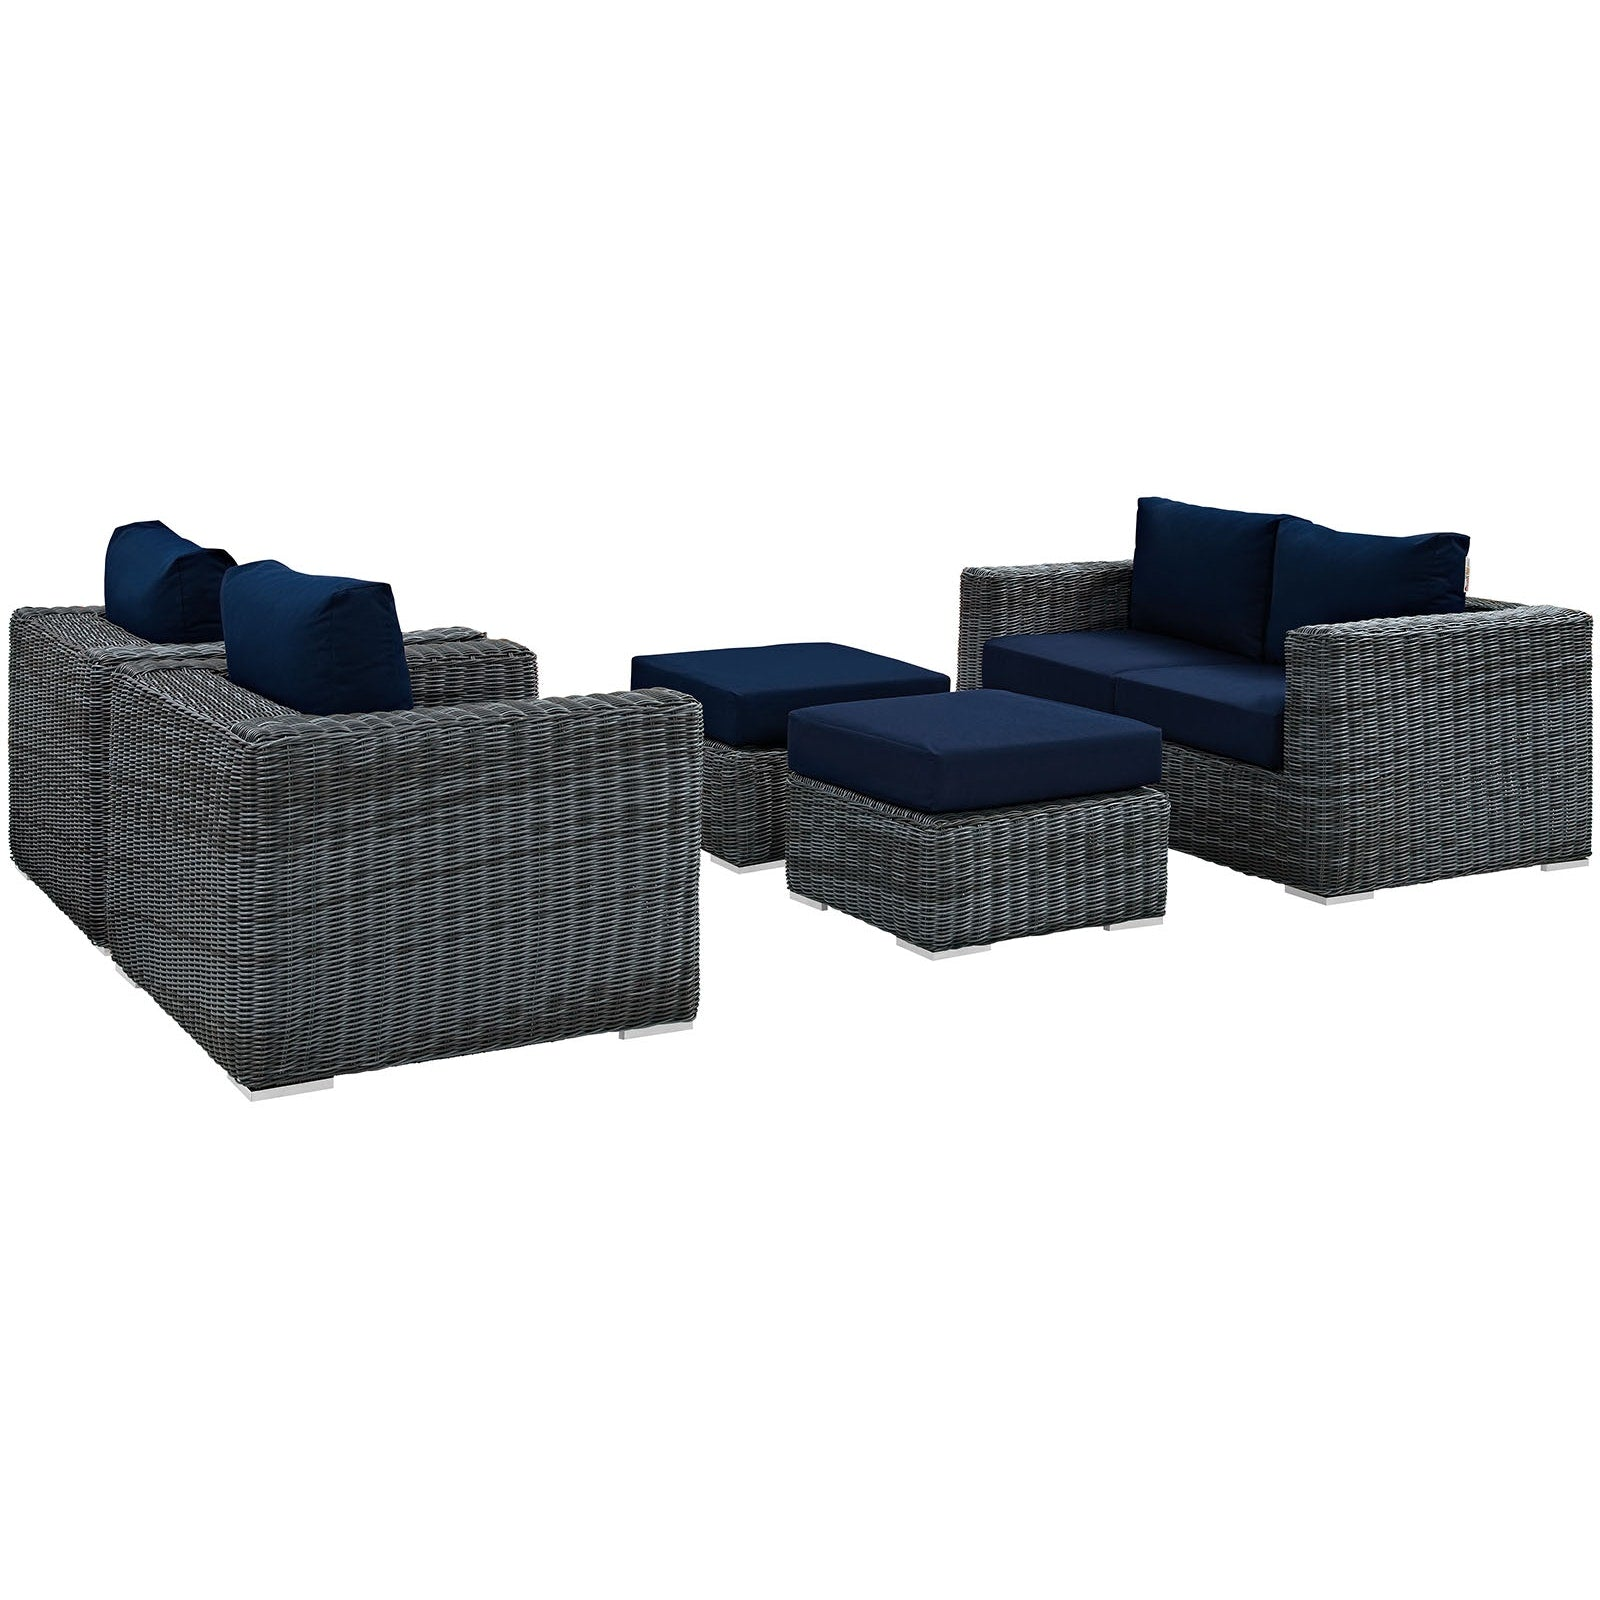 Summon 5 Piece Outdoor Patio Sunbrella® Sectional Set - Canvas Navy